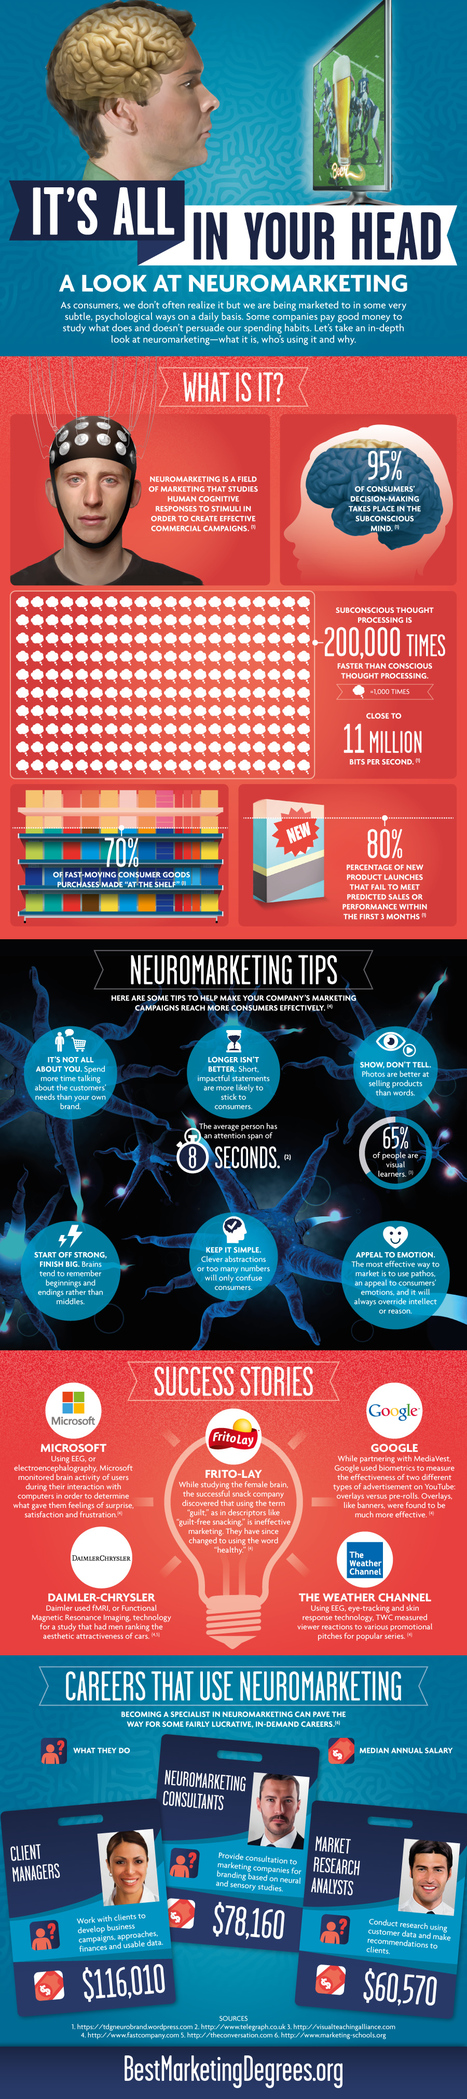 Infographic: A Look at Neuromarketing - The Hub | EVENTOS PUBLICITARIOS | Scoop.it